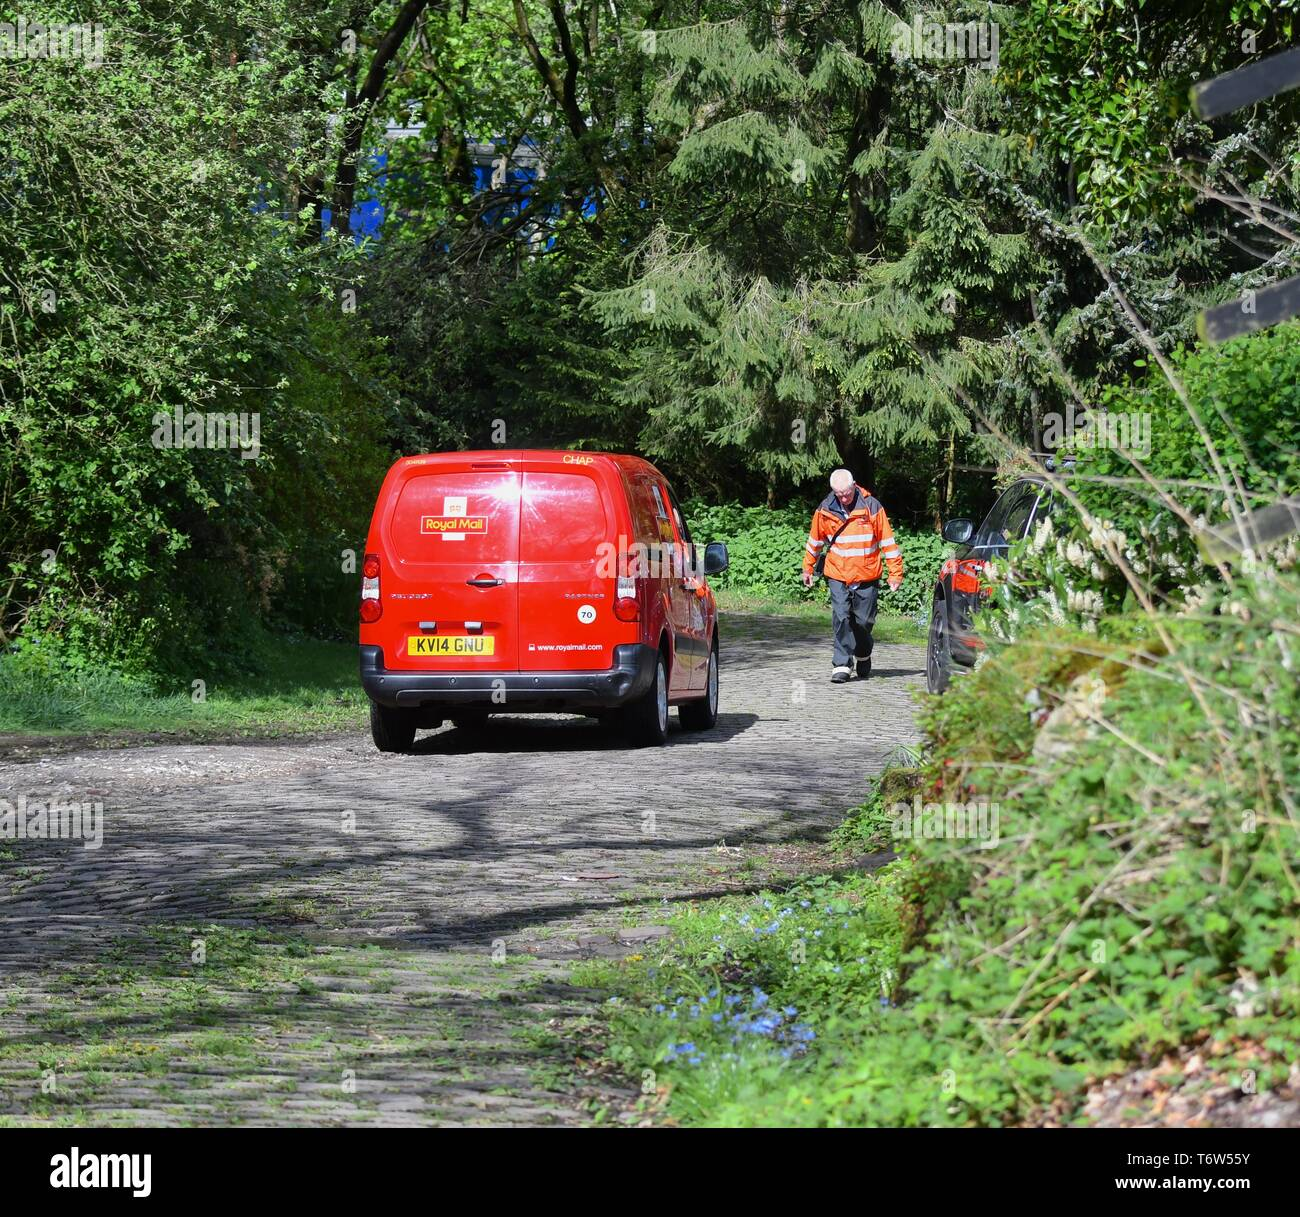 A postal worker on his way back to his van after delivering to a house in Thornsett, near New Mills, Derbyshire. - Stock Image